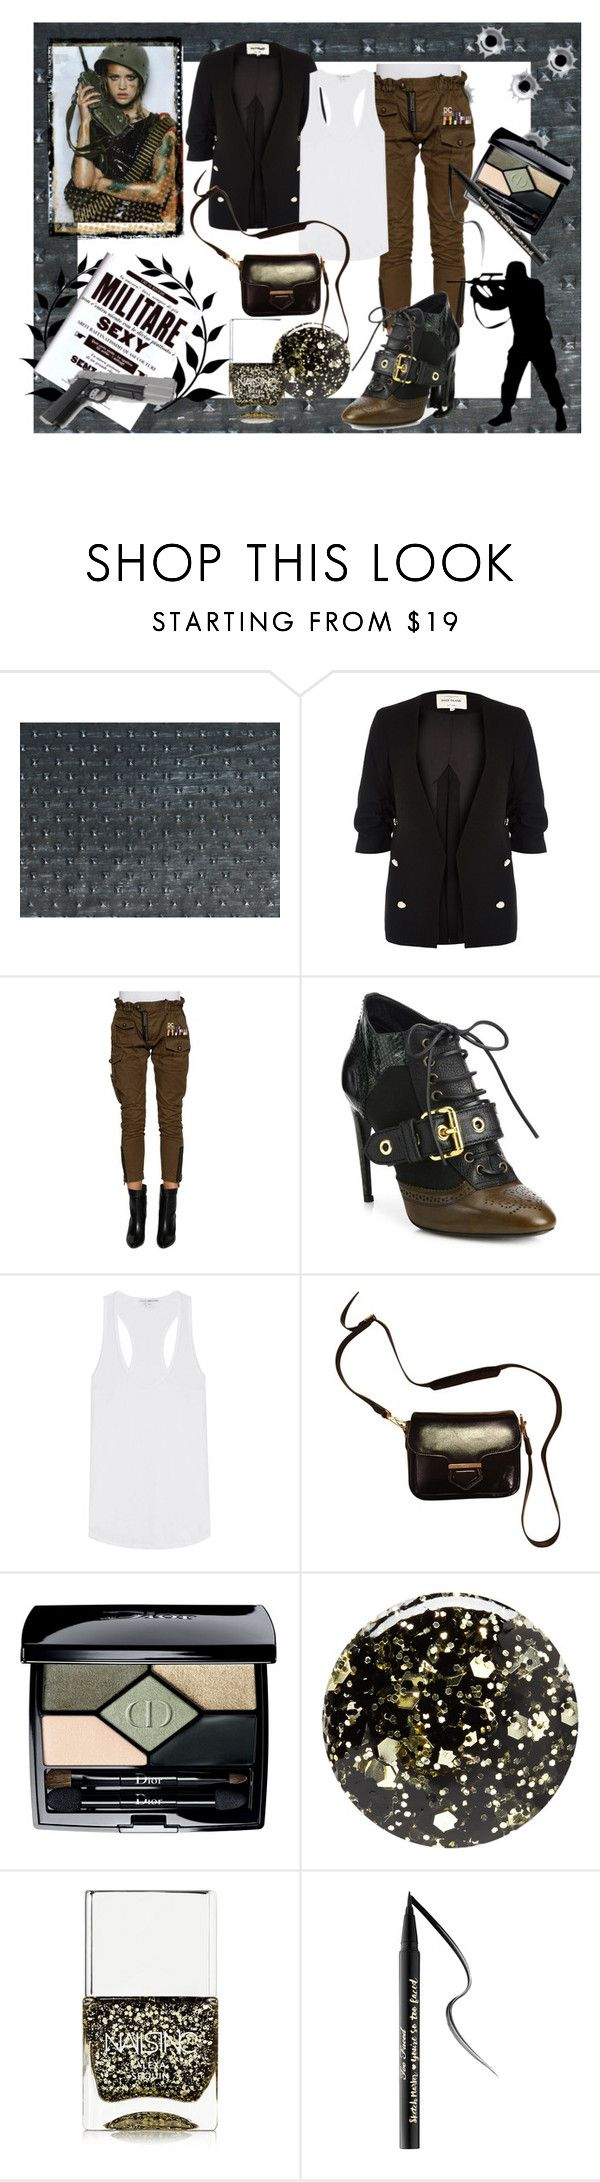 """""""Military Minx."""" by kerry-chesterman ❤ liked on Polyvore featuring River Island, Dsquared2, Burberry, James Perse, Tod's, Christian Dior, Nails Inc. and Too Faced Cosmetics"""